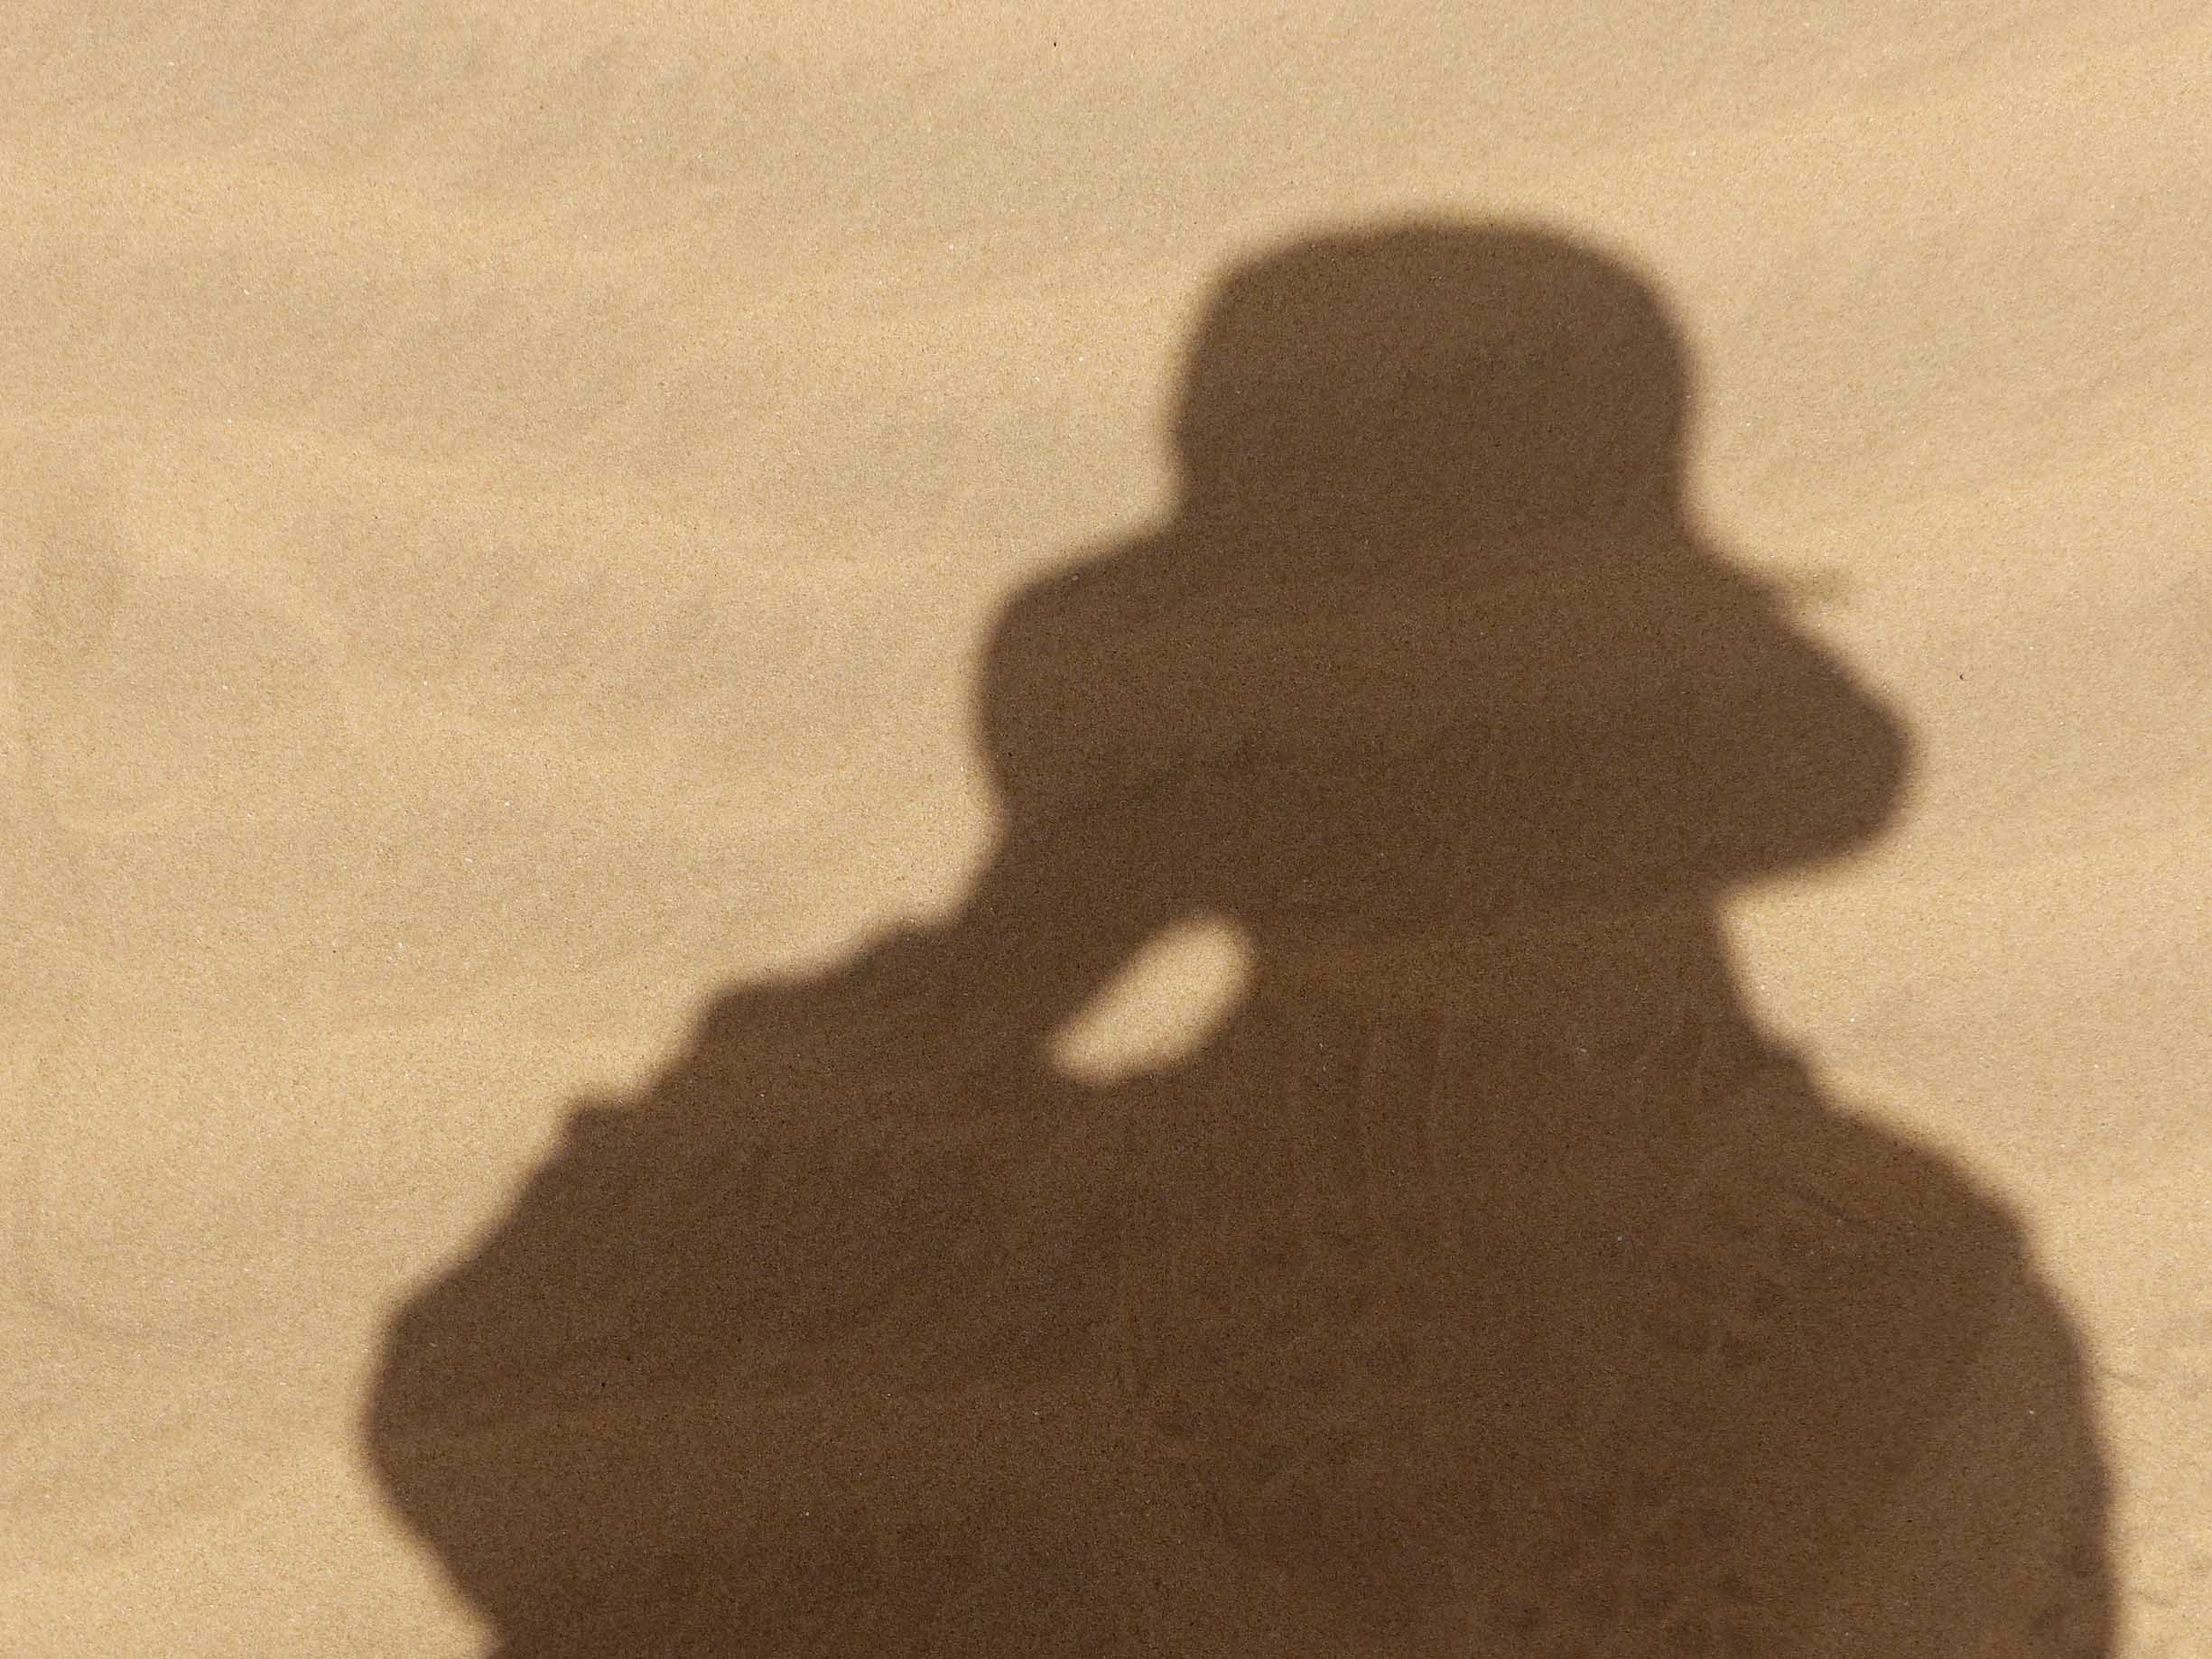 Shadow of a woman wearing a hat